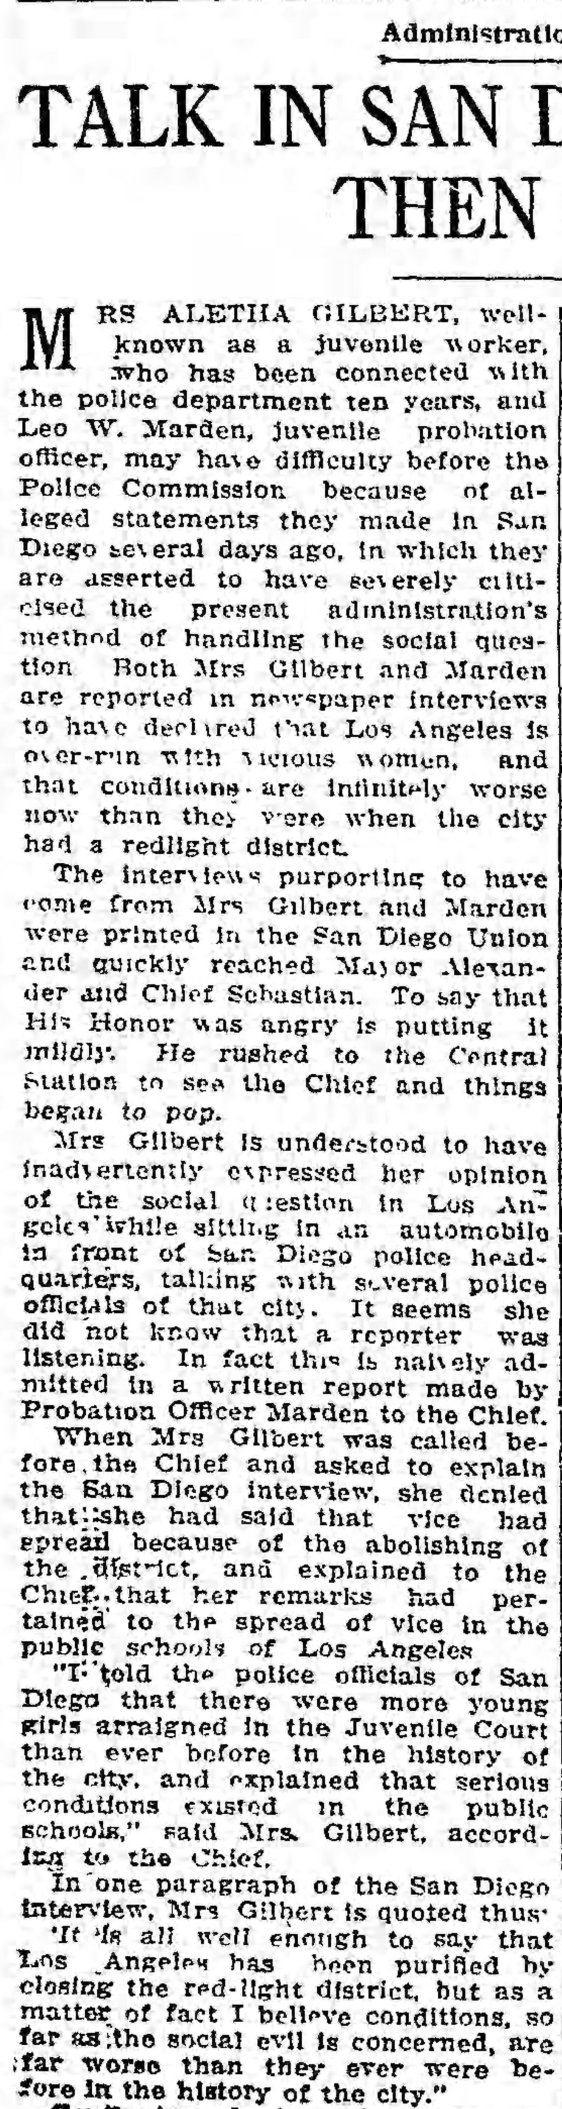 The_Los_Angeles_Times_Sat__Oct_19__1912_